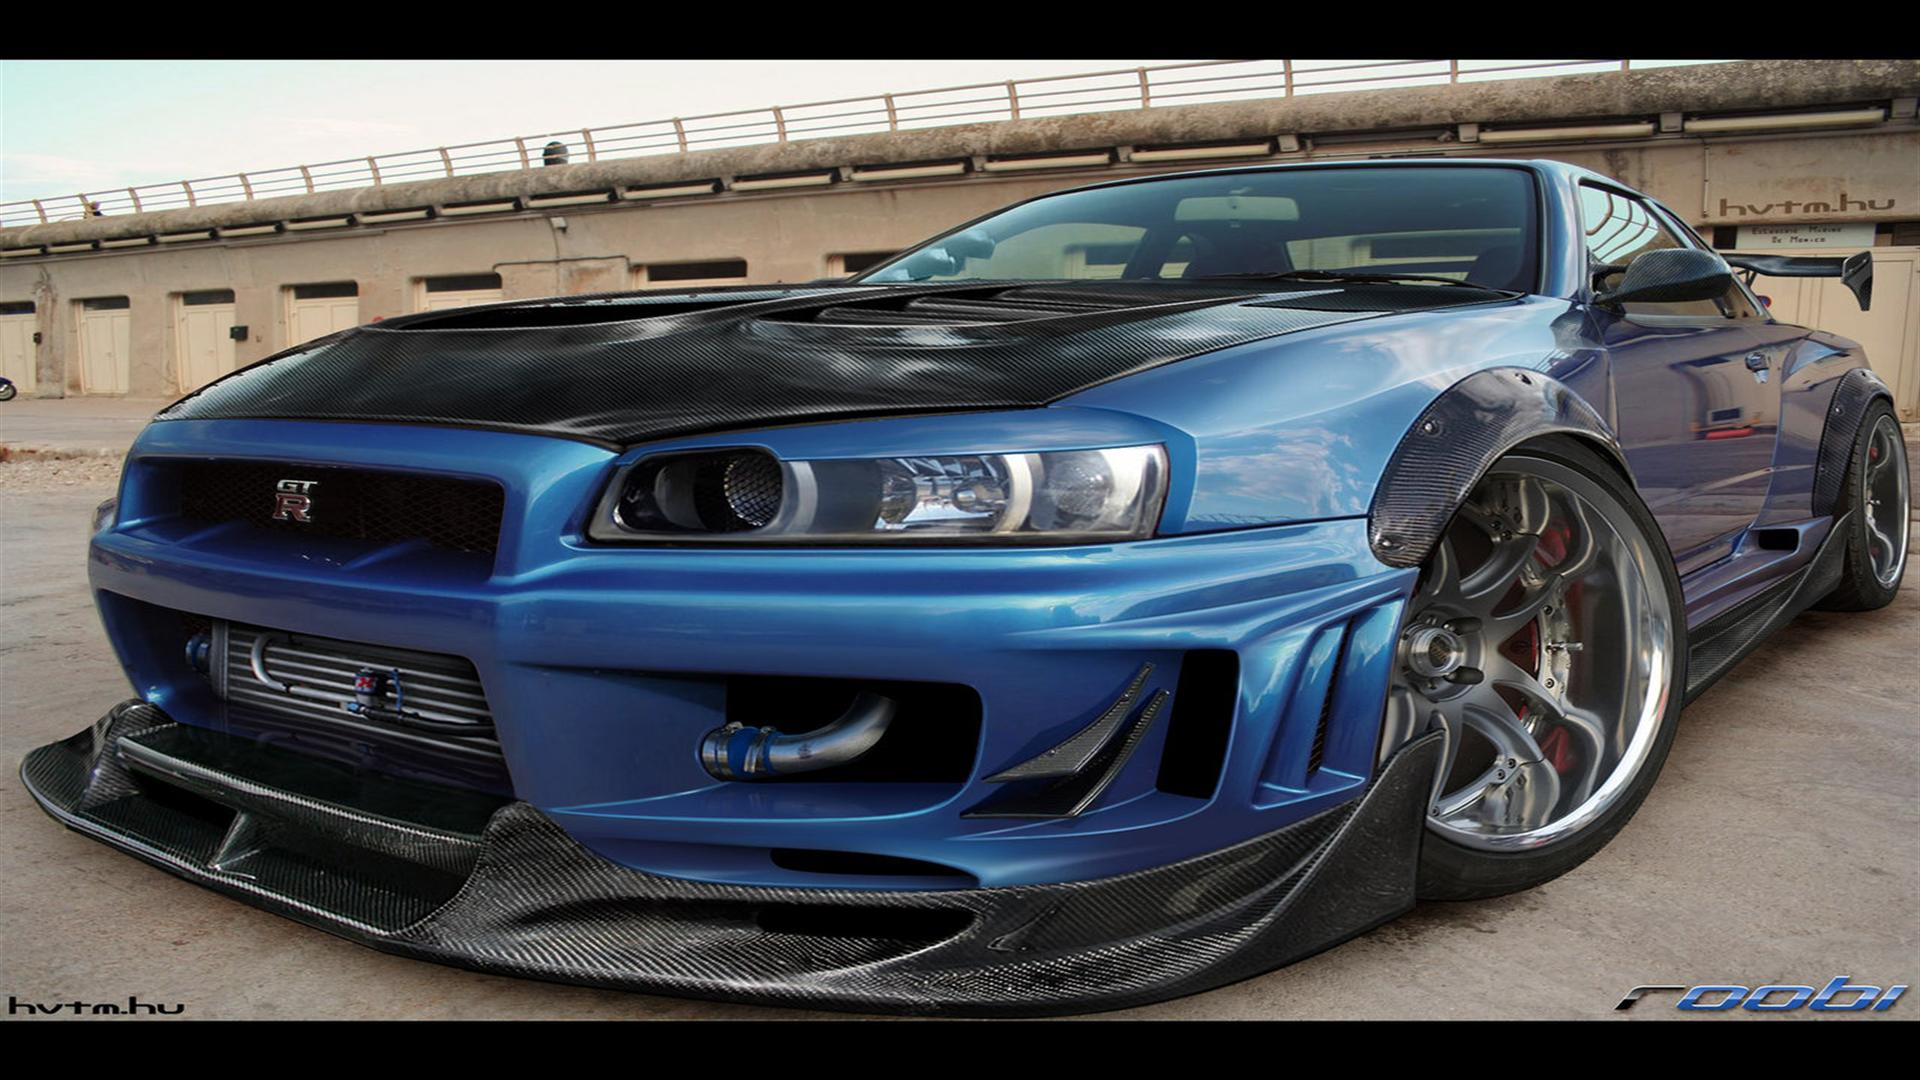 nissan skyline r35 hd wallpapers 1080p cars 1920x1080